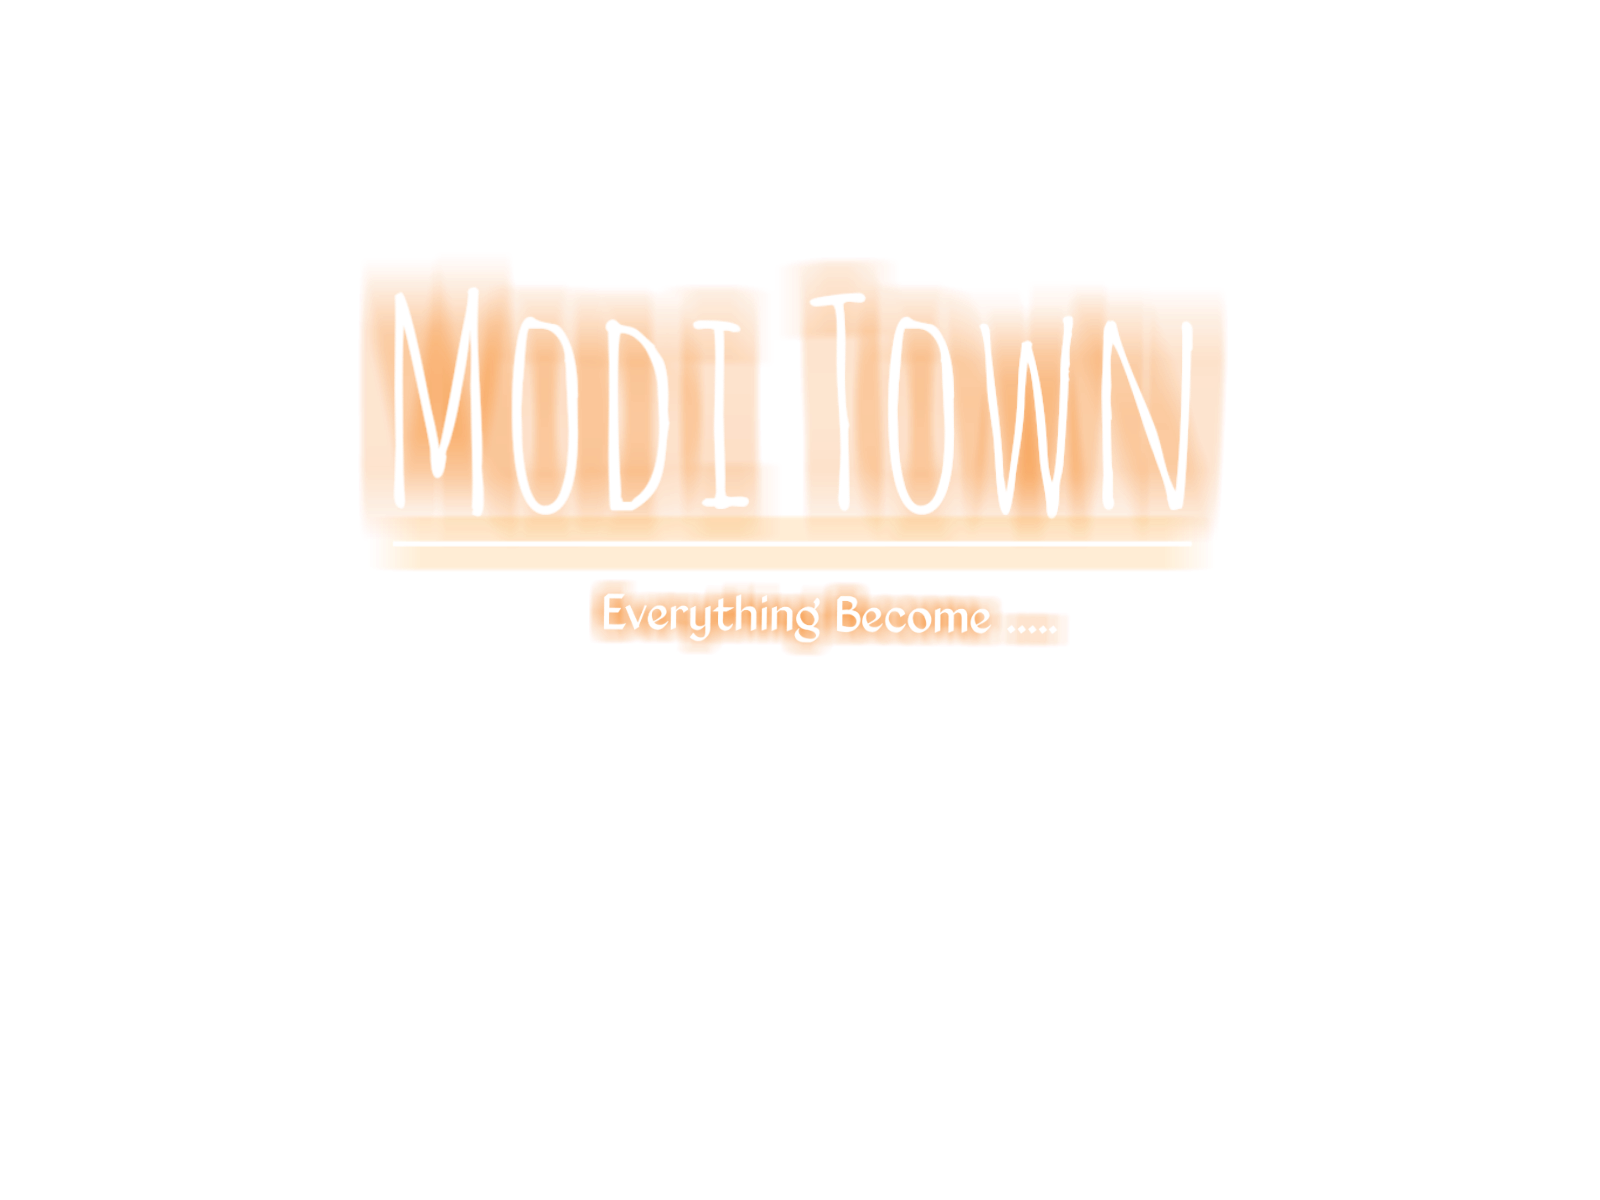 Modi town text png download modi town text with neon light